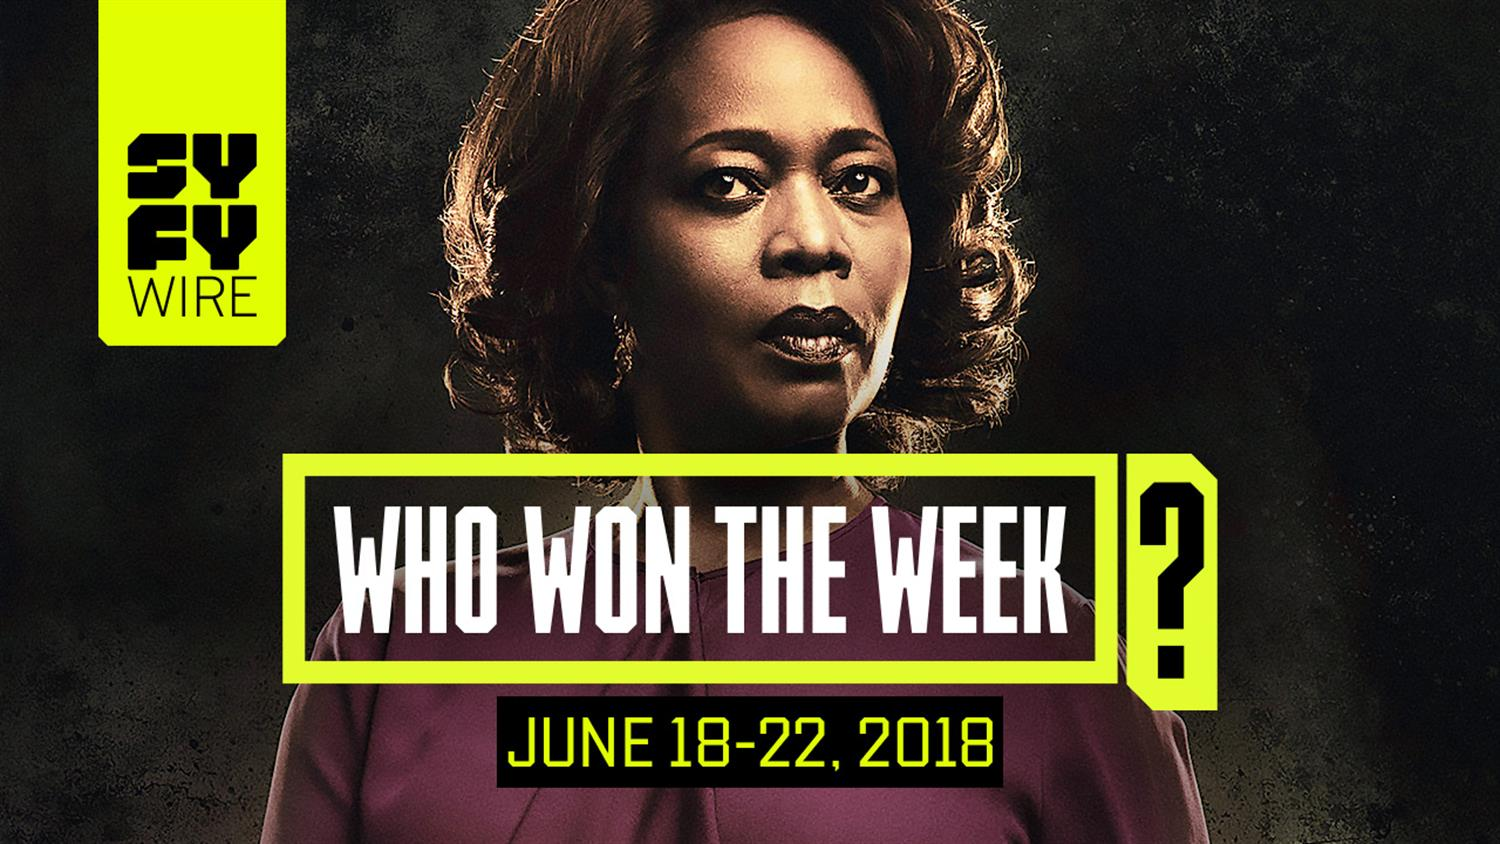 Luke Cage and Incredibles 2: Who Won The Week For June 18-22